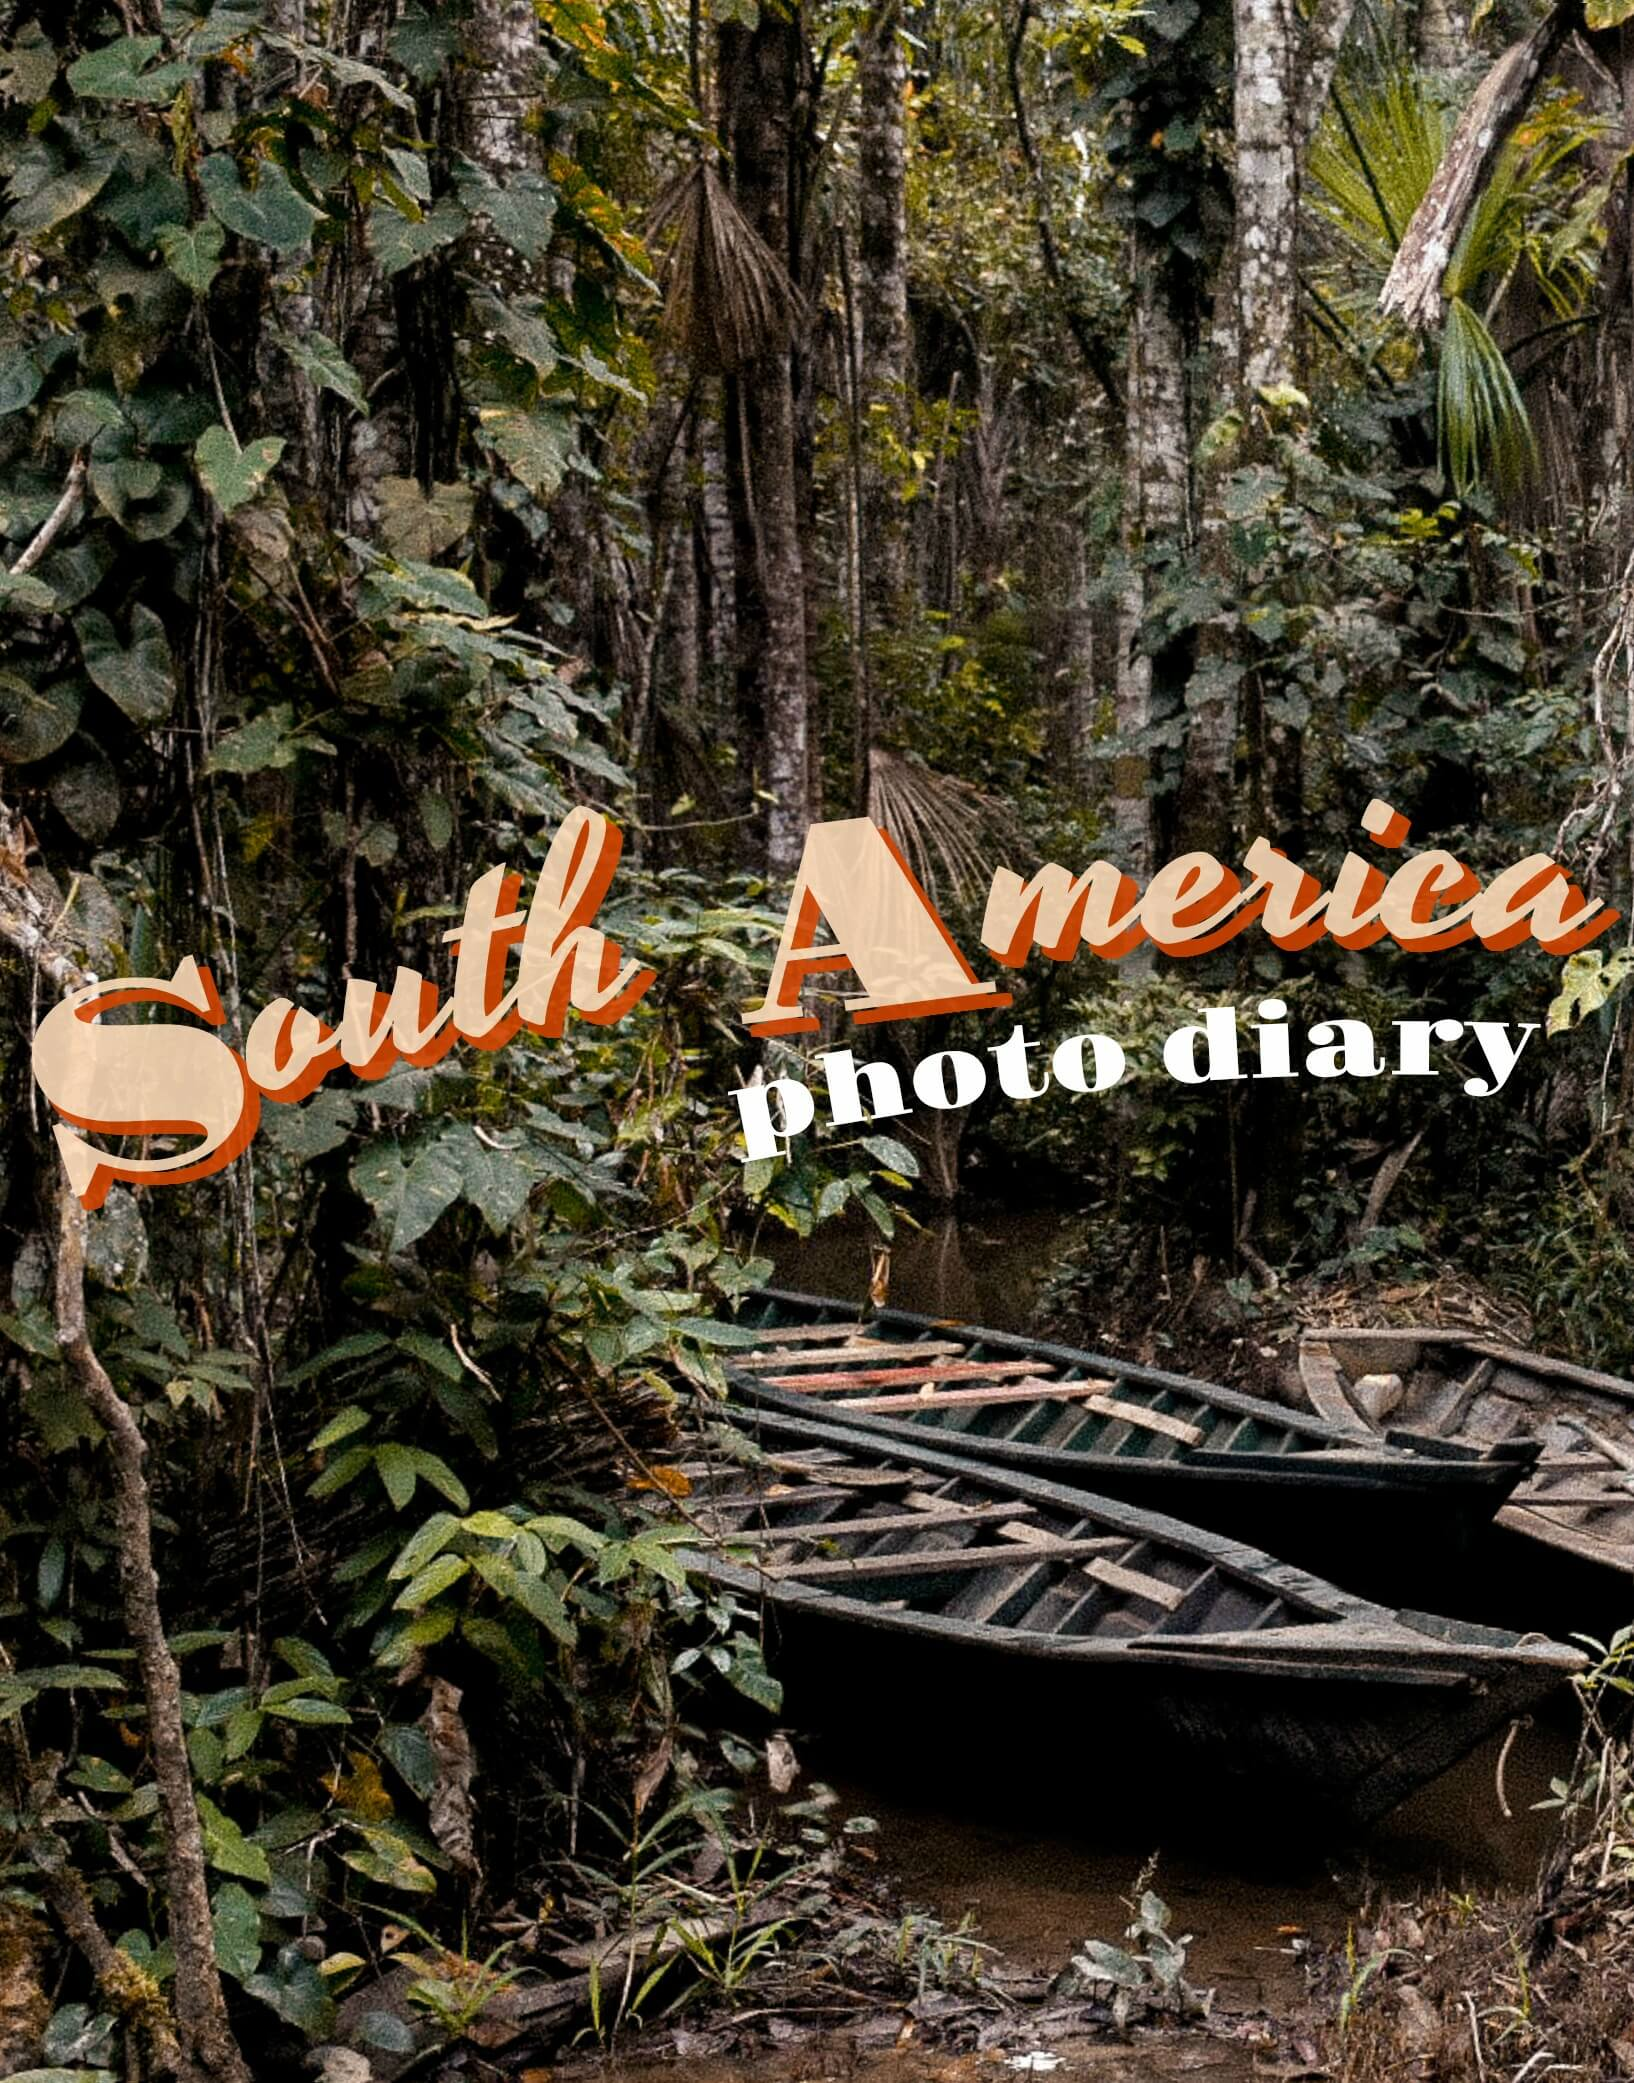 Peruvian Rainforest with text overlay - South America Photo Diary